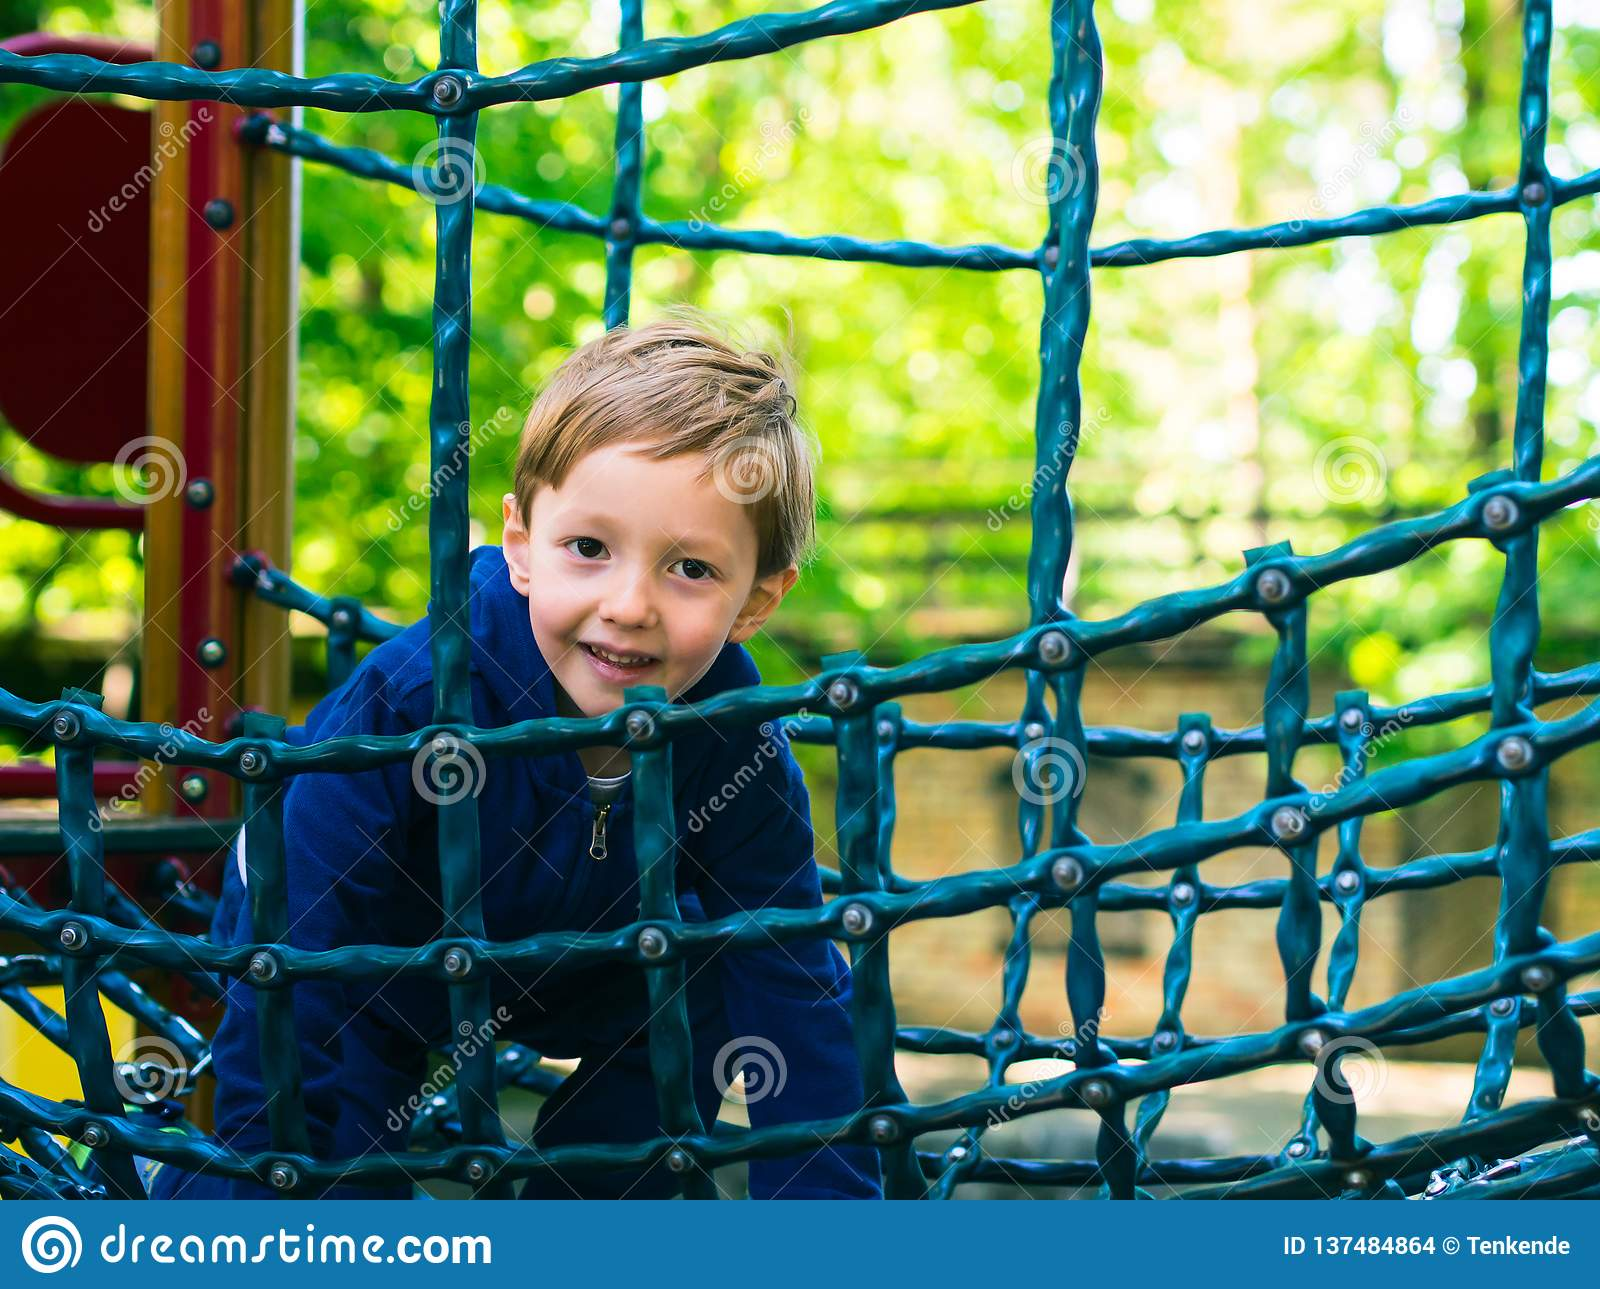 Little boy playing on a playground. Activity